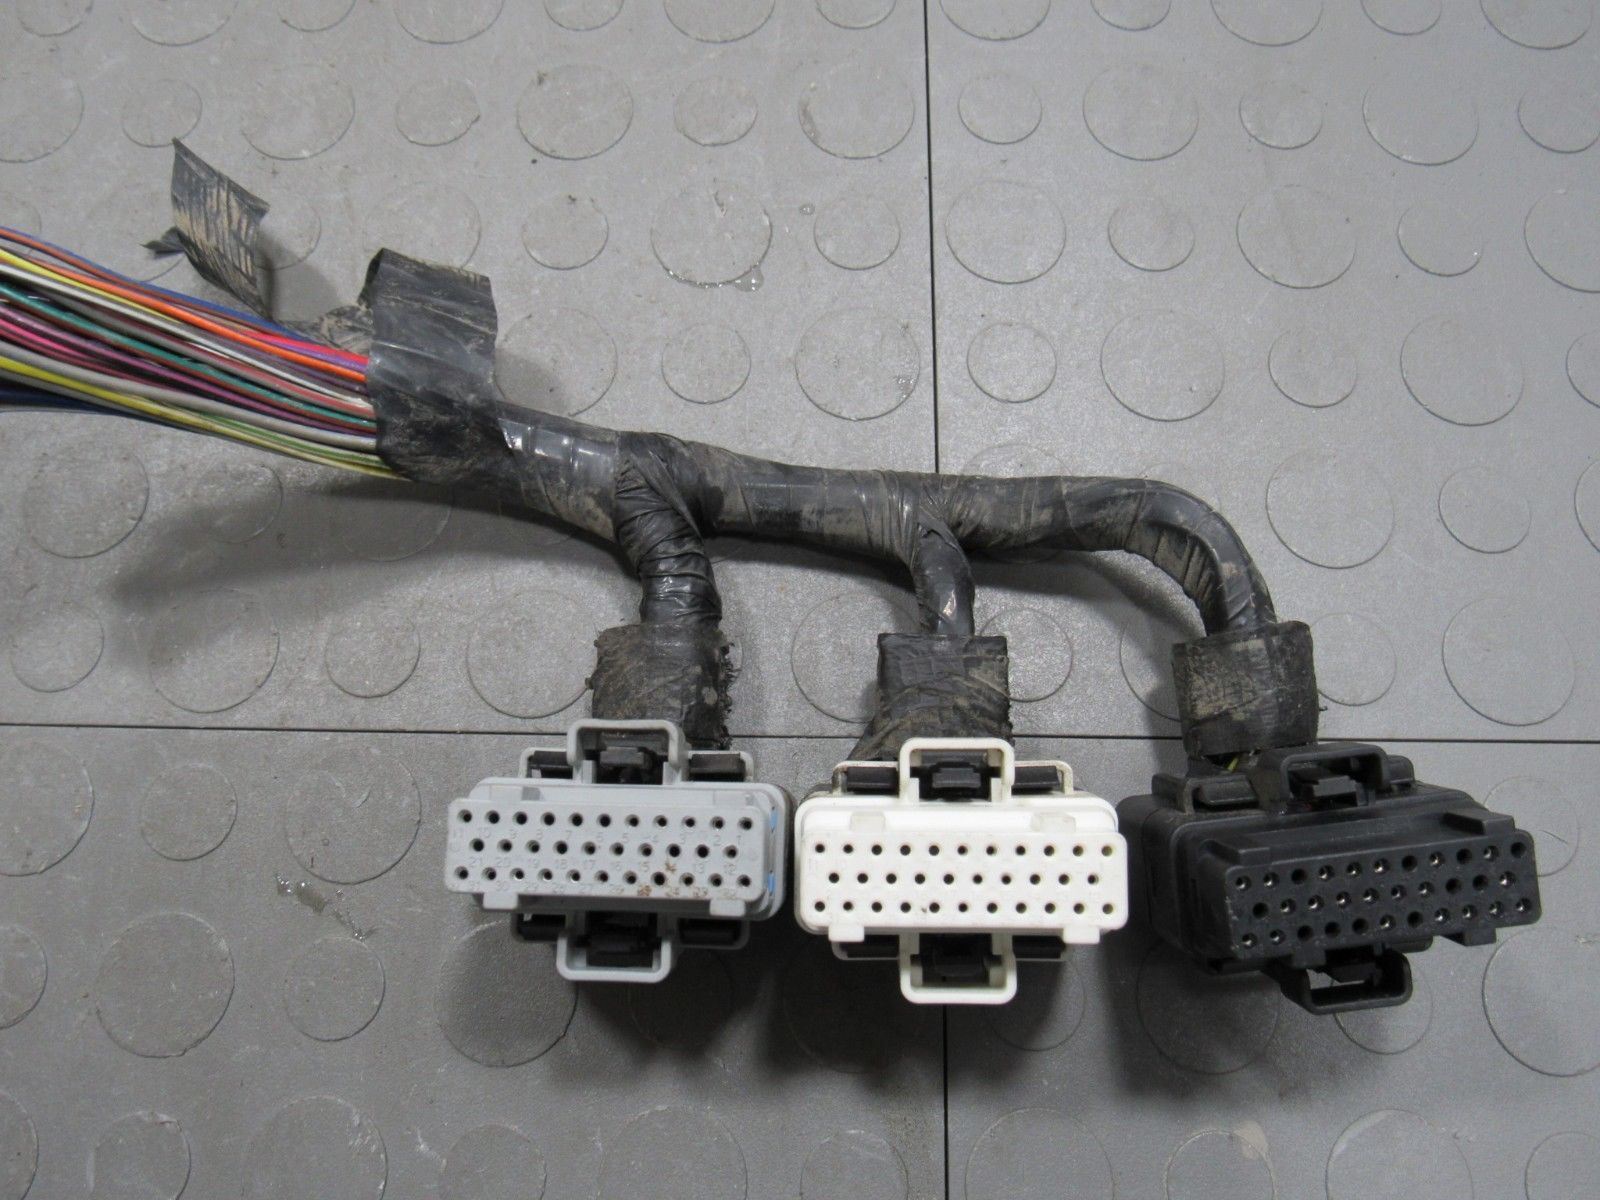 96 Jeep Cherokee 40l Ecu Ecm Pcm Computer Pigtails Wire Wiring An Outlet Pigtail Plugs Harness Ei